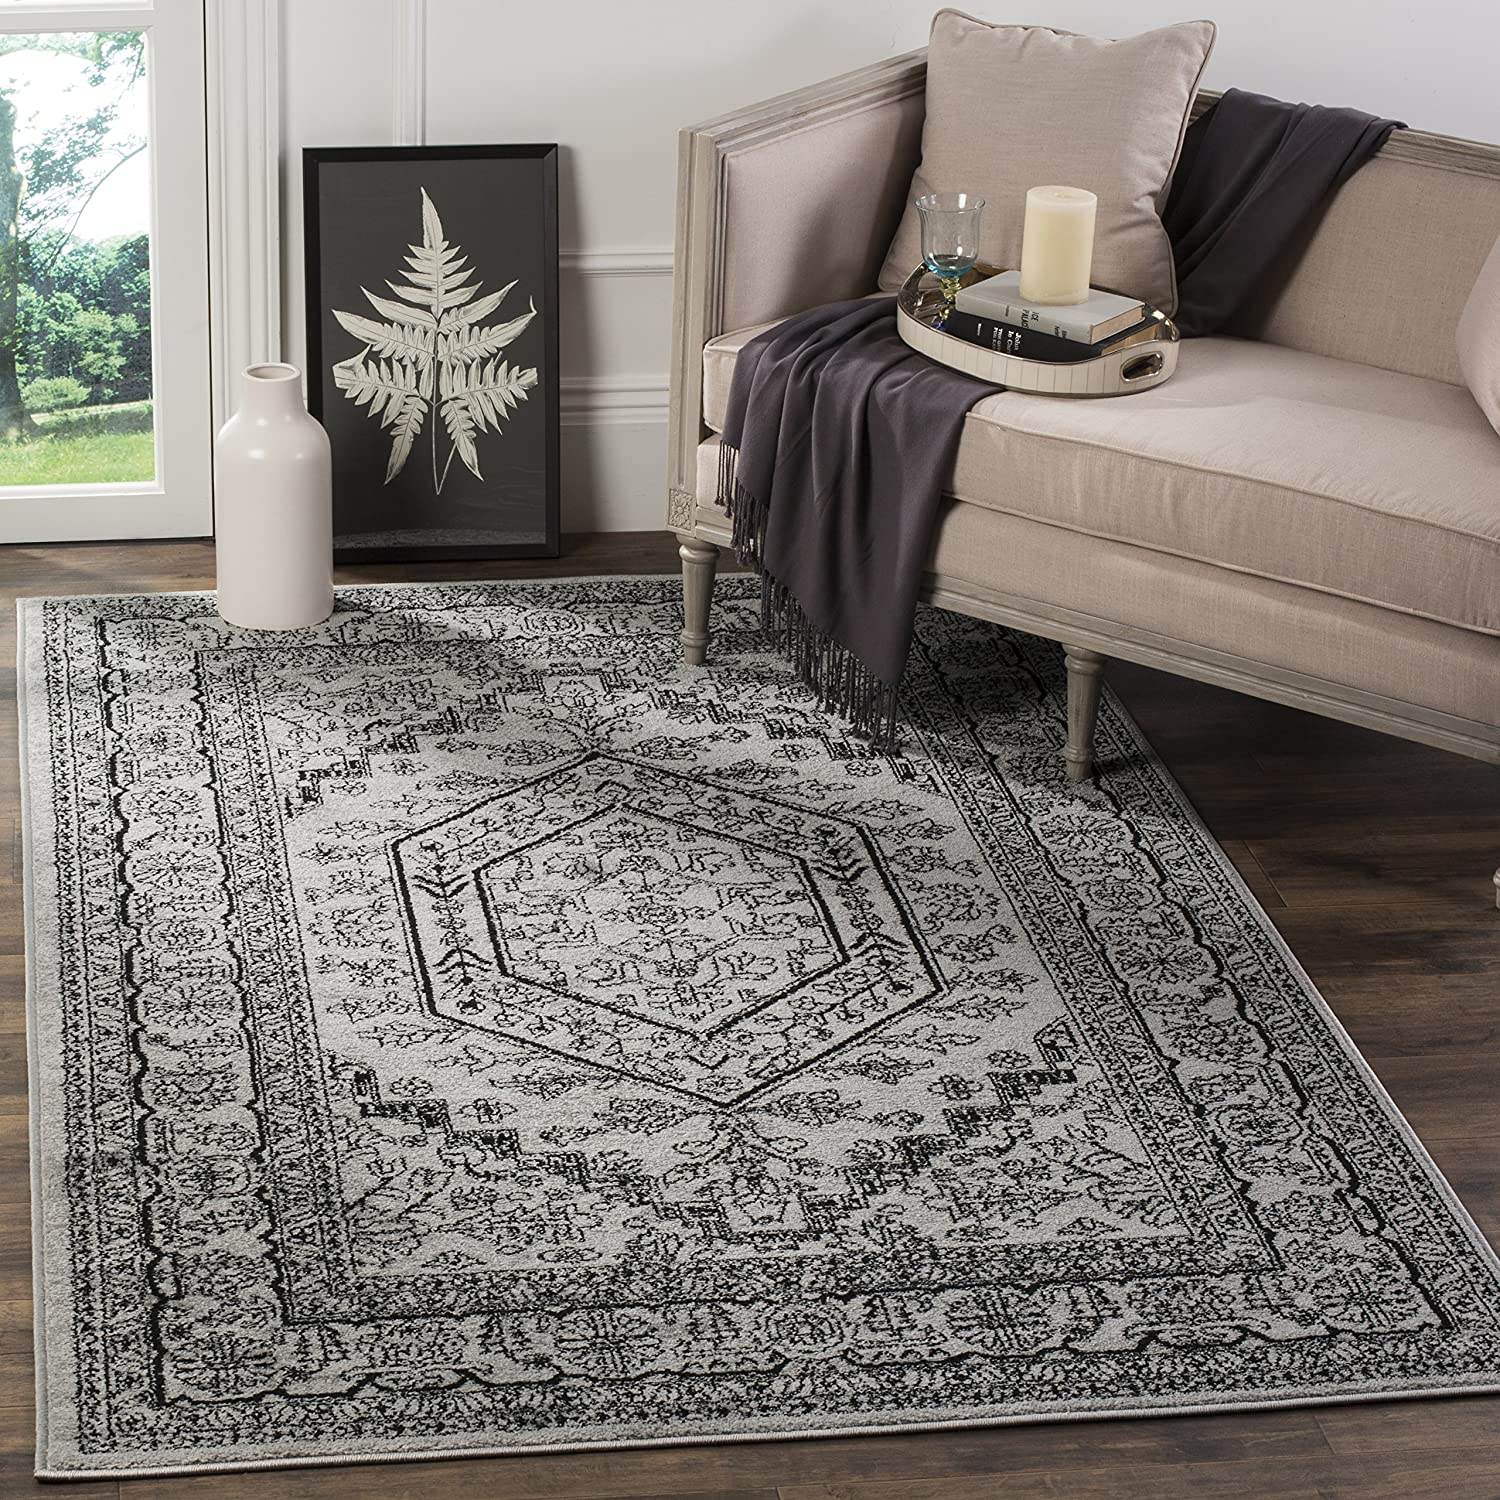 garden area floral rug wool traditional product karakoram square tufted vanilla home border hand rugs